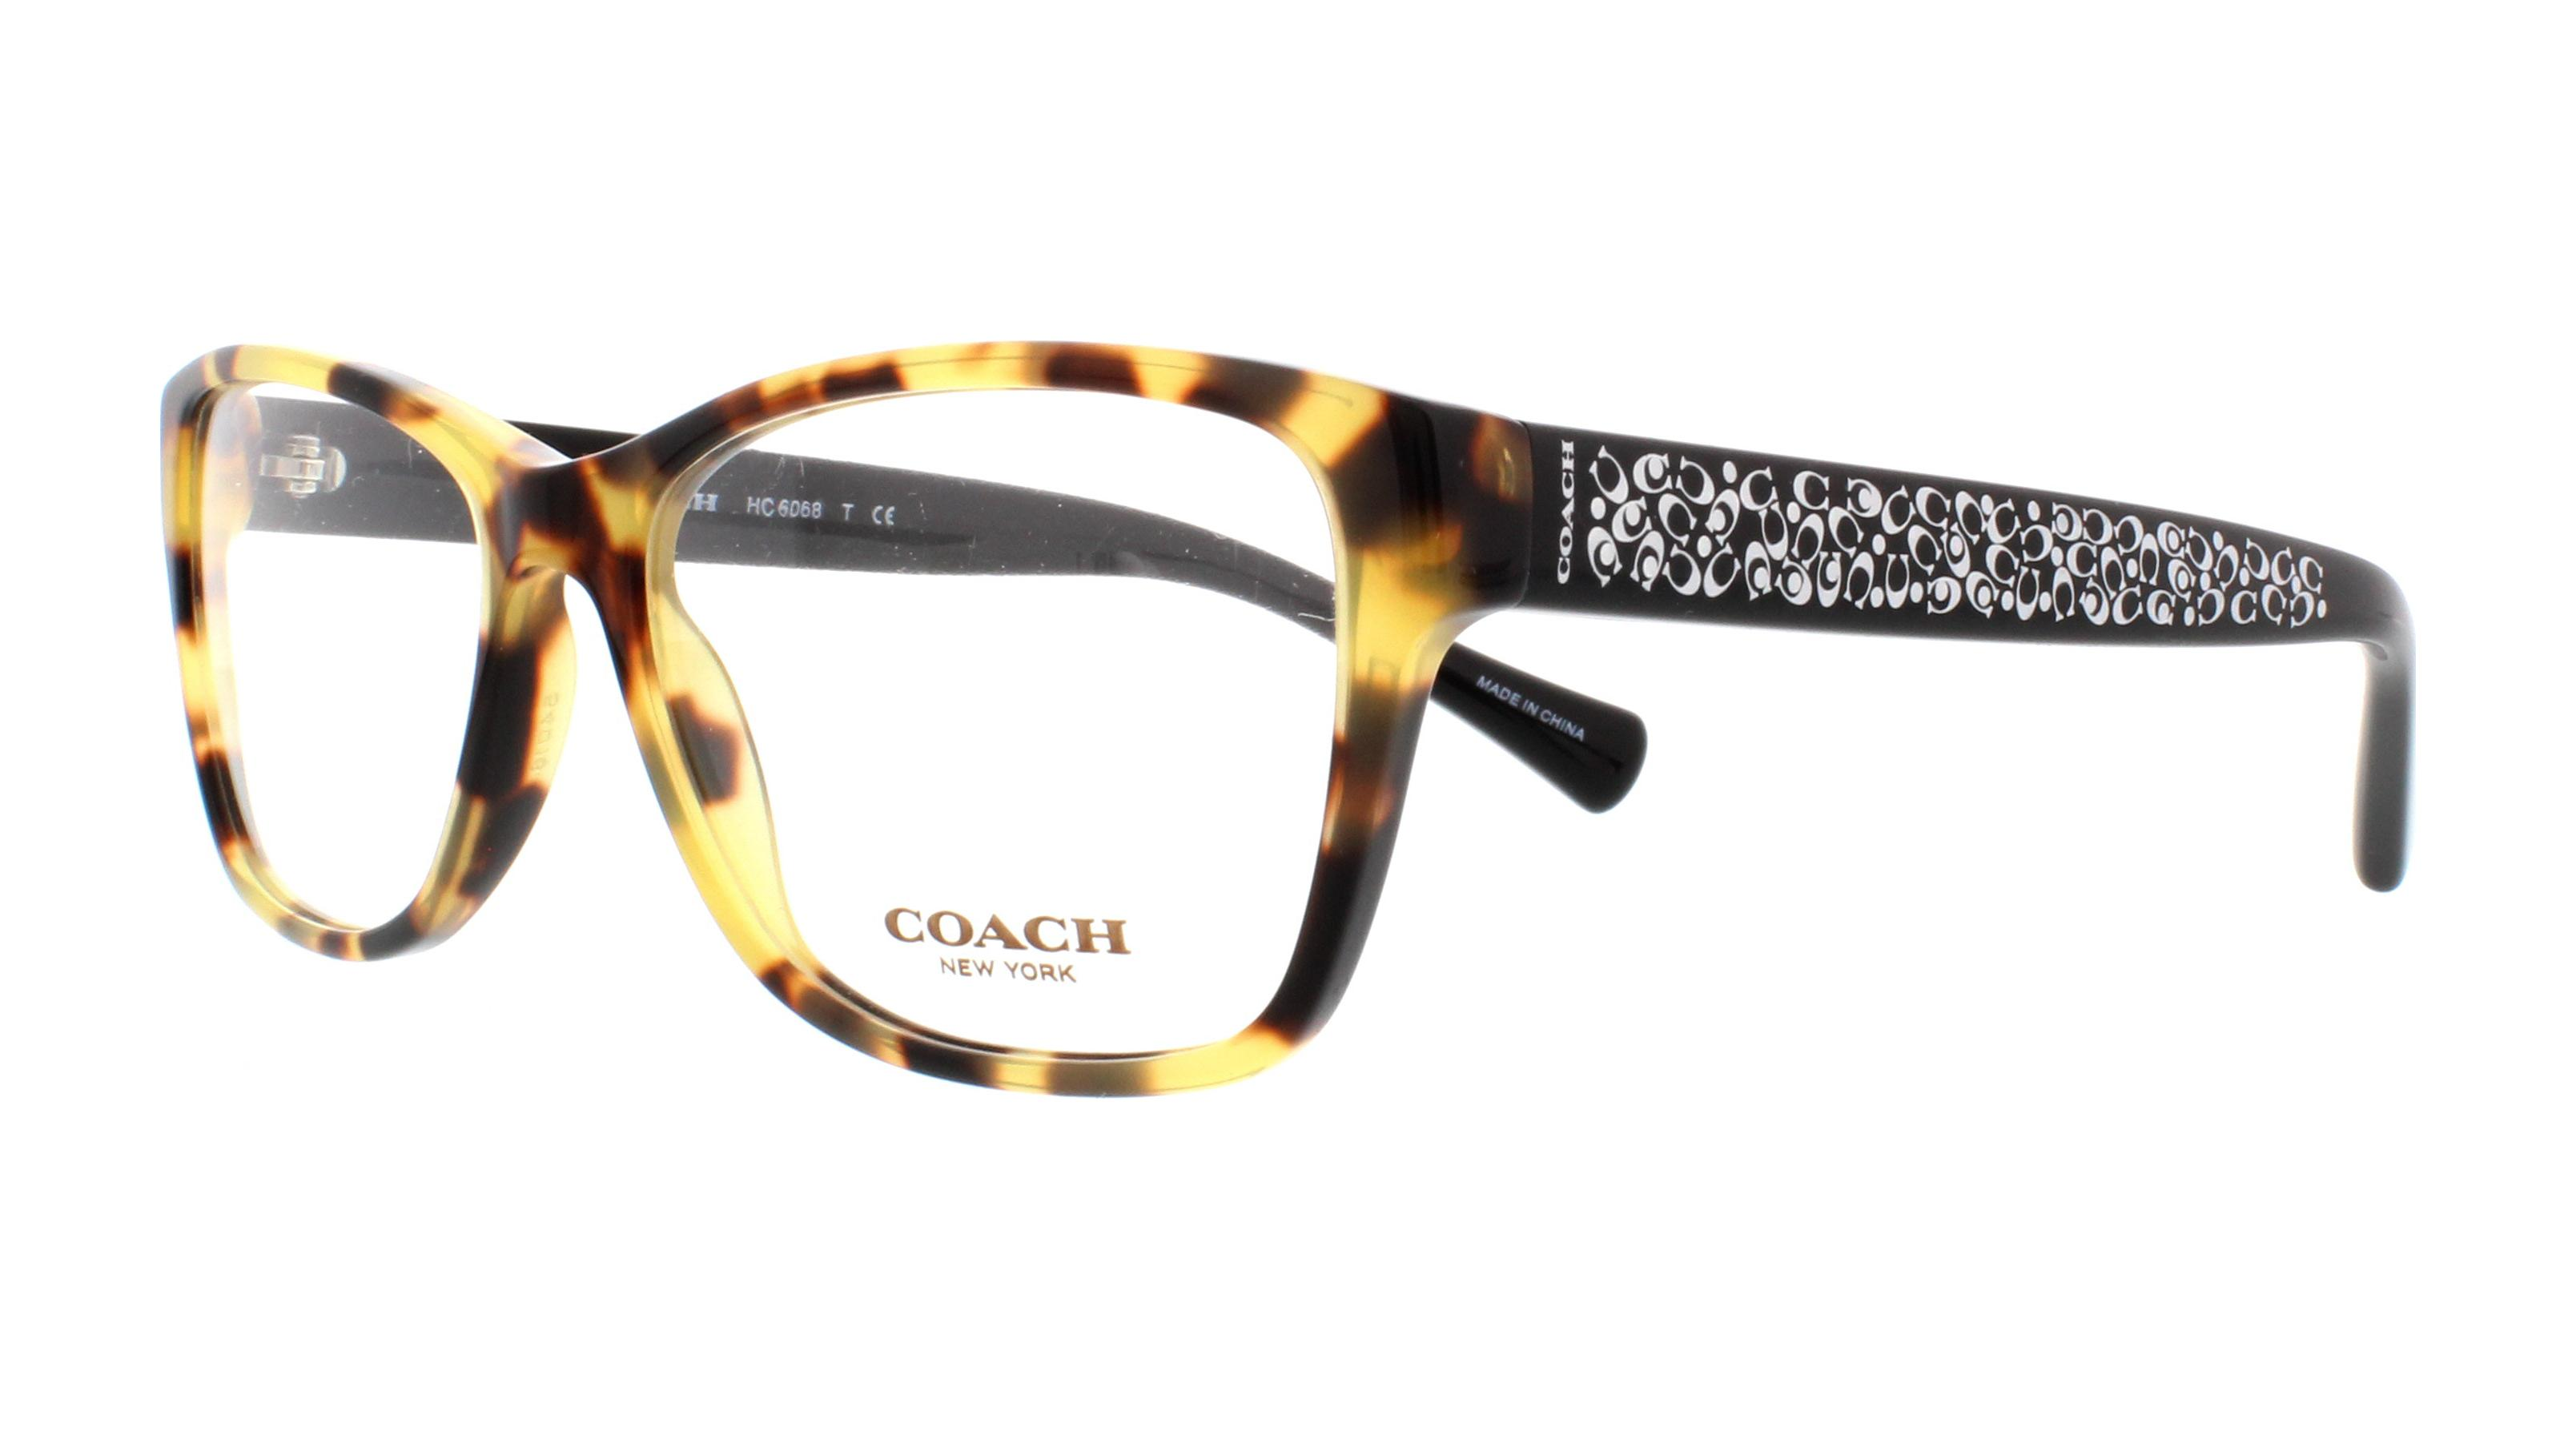 Picture of Coach HC6068